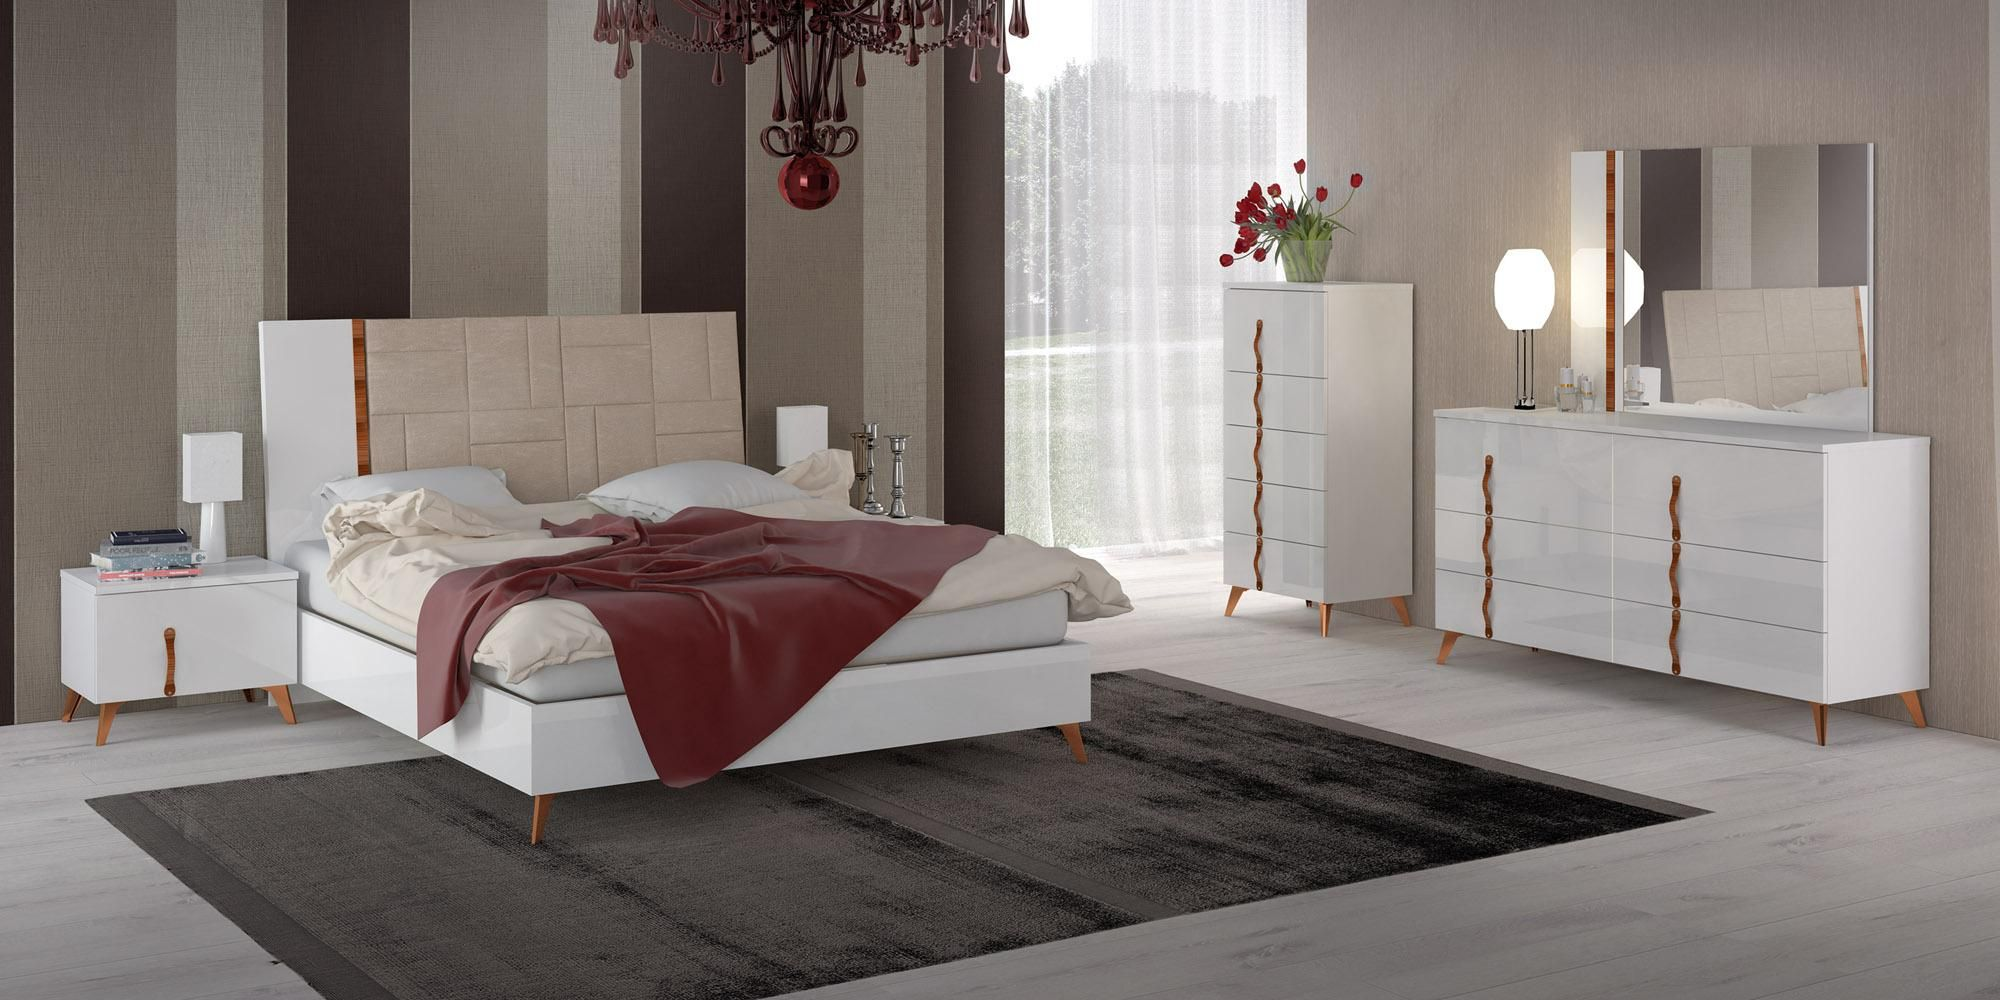 contemporary italian bedroom furniture with contemporary italian bedroom furniture in white finish w leather headboard bed prime classic design offers wide variety of modern made italy leather elite modern bedroom sets with extra storage